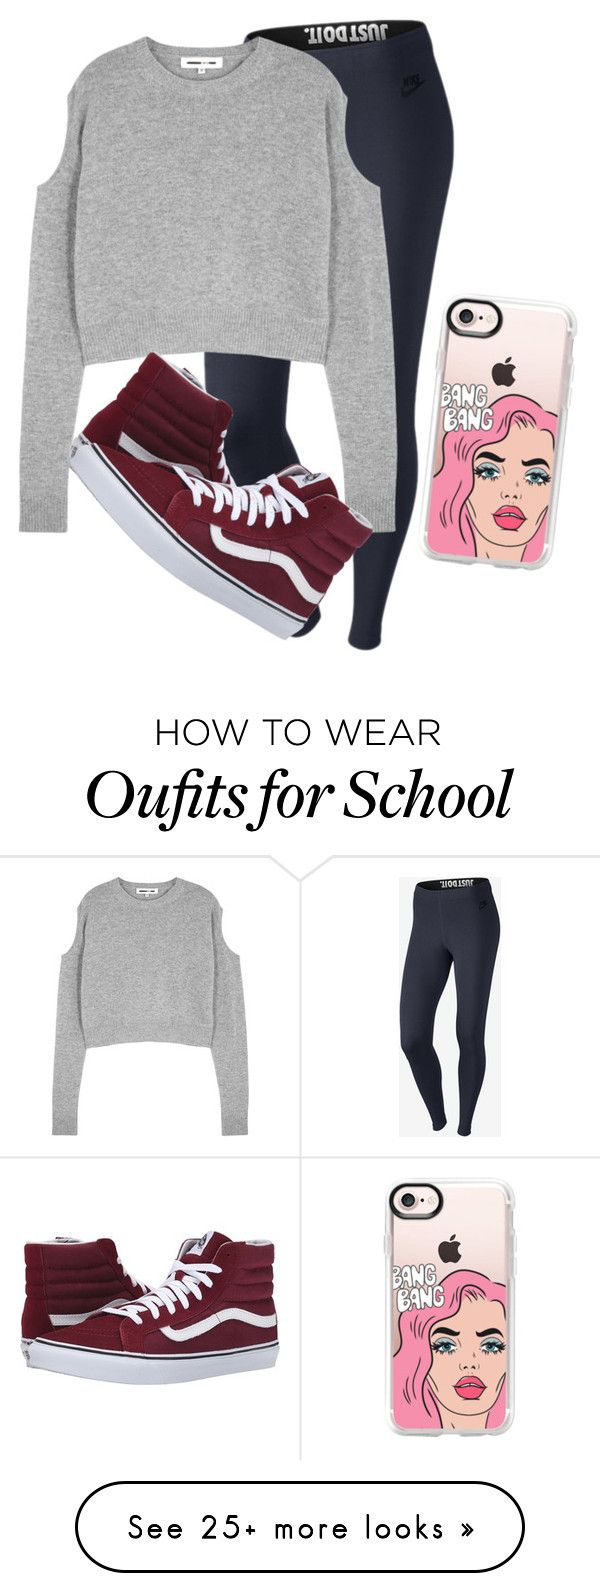 """Day 2 of school"" by anonest on Polyvore featuring NIKE, McQ by Alexander McQueen, Vans and Casetify"